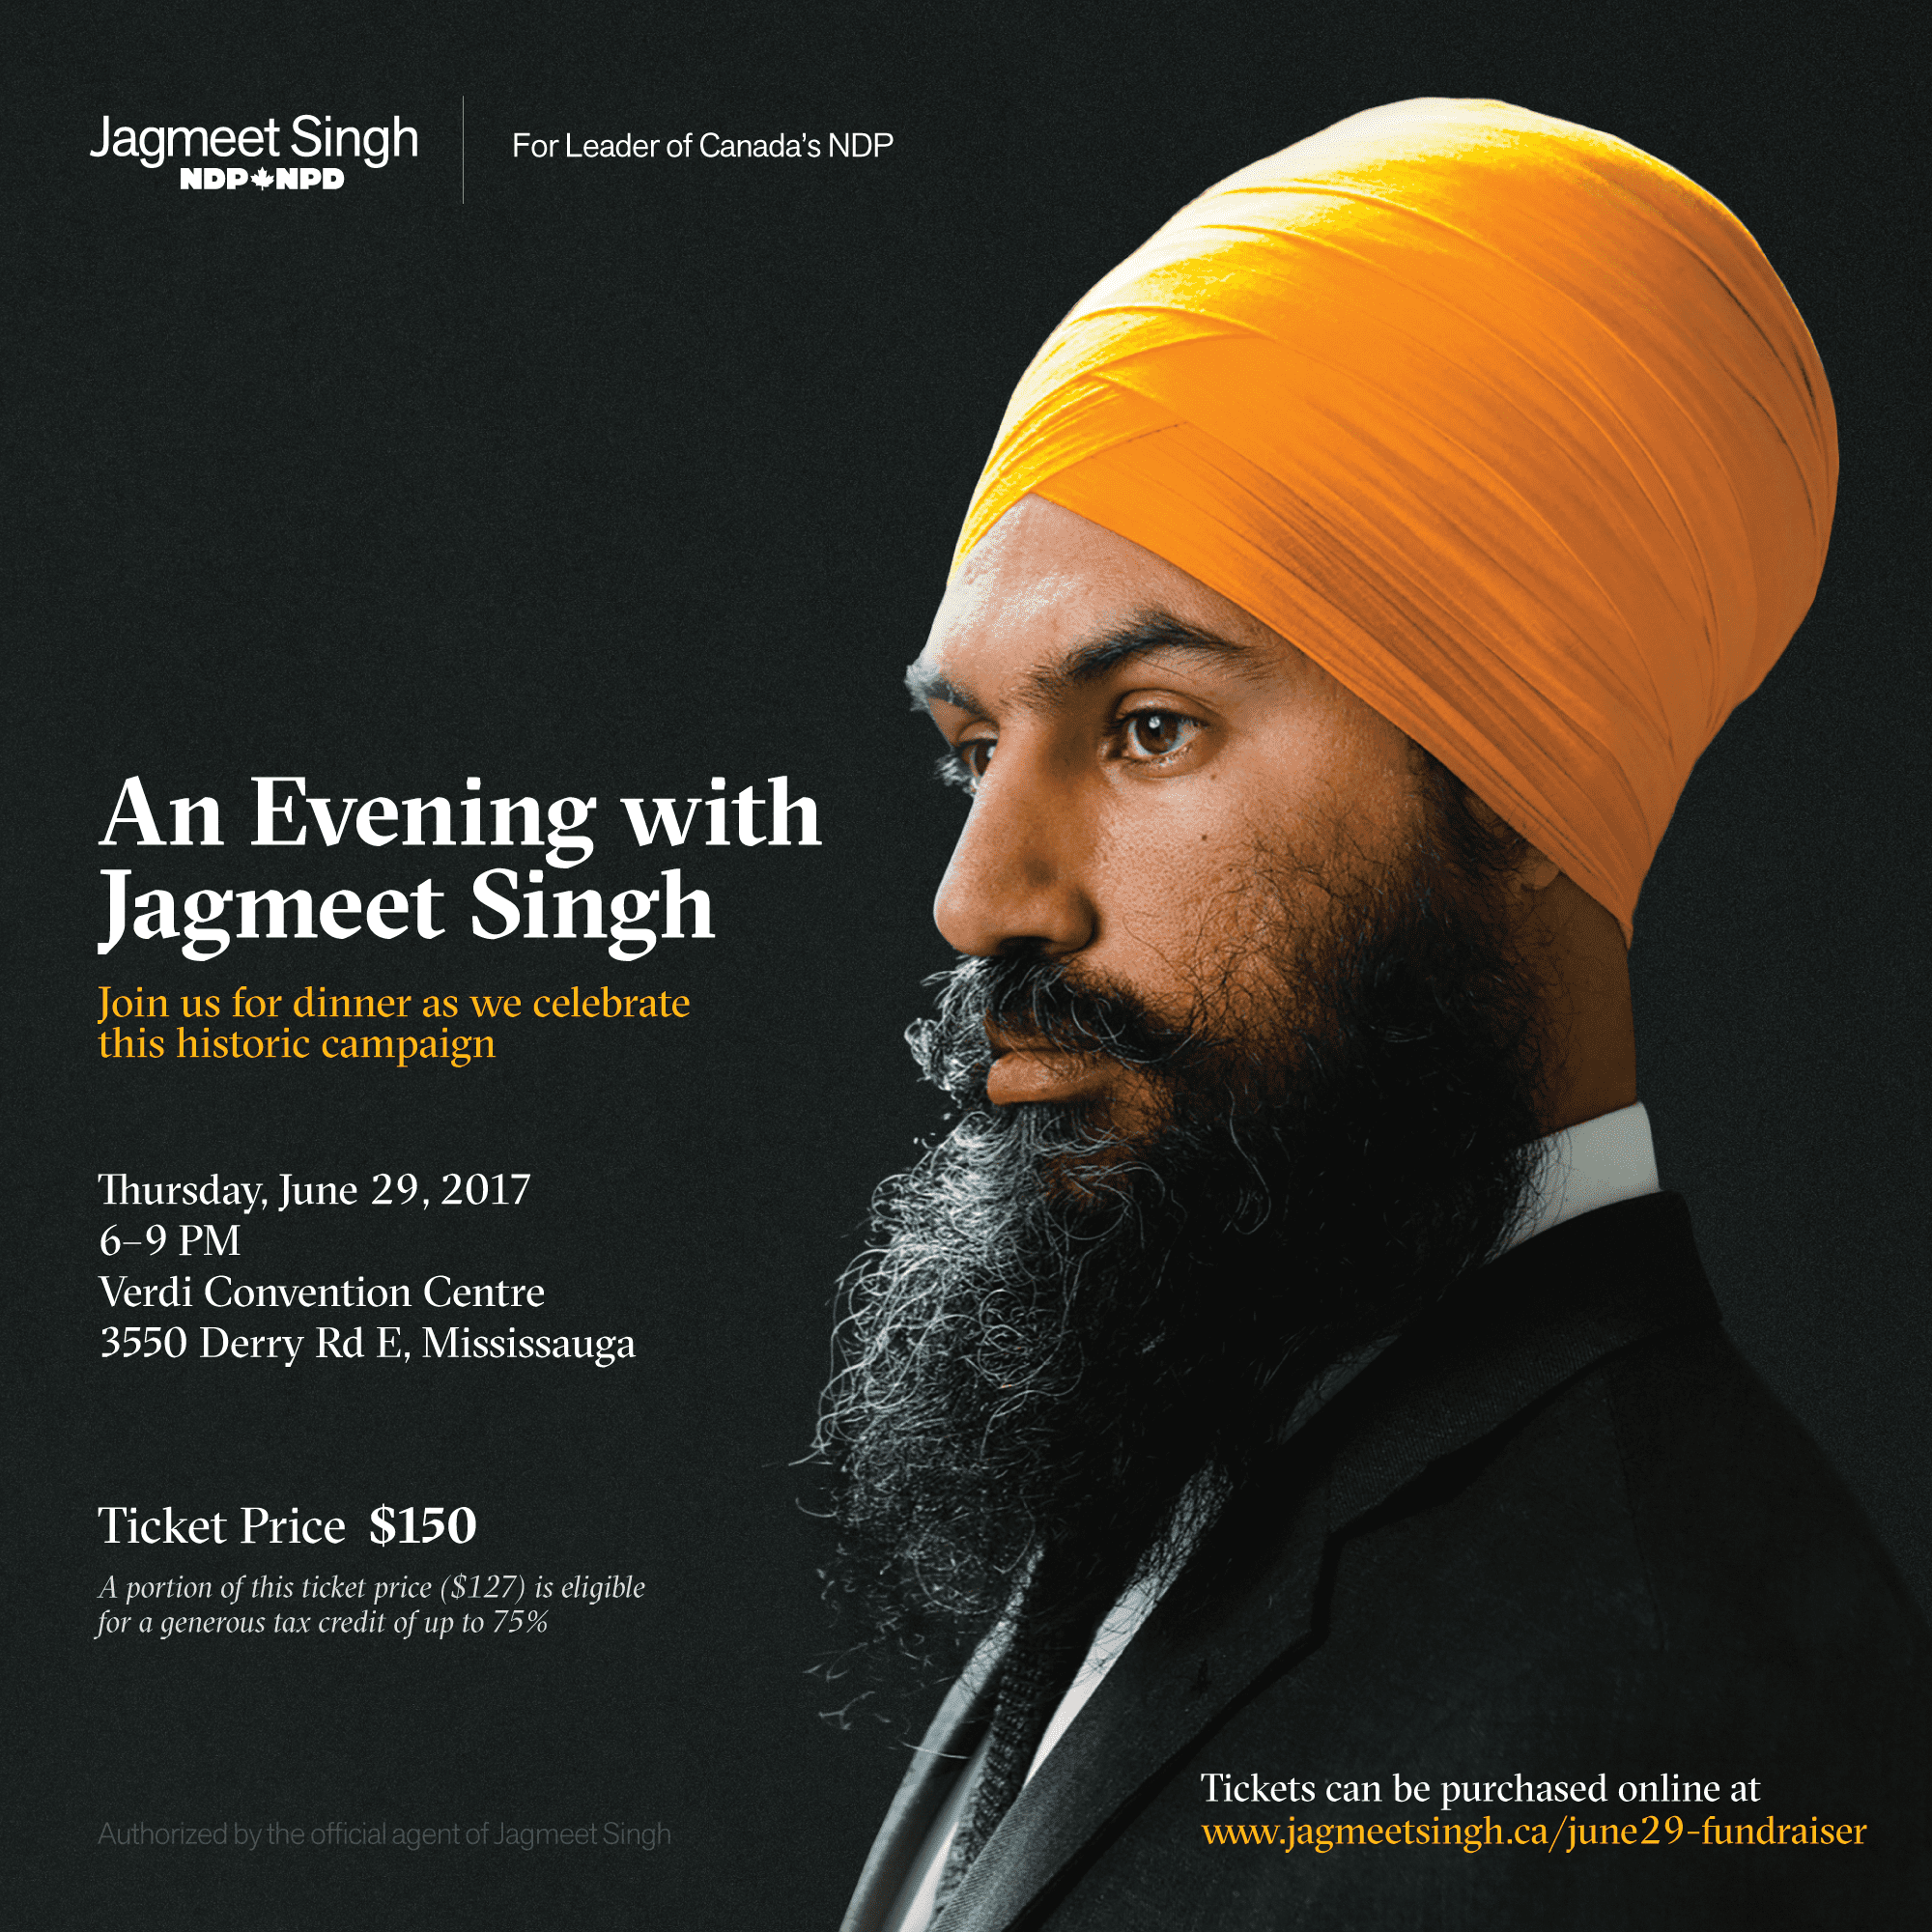 Mississauga Canada With Tremendous Momentum And Energy During His Travels Across The Country Jagmeet Singh Will Be Returning Home For Dinner And